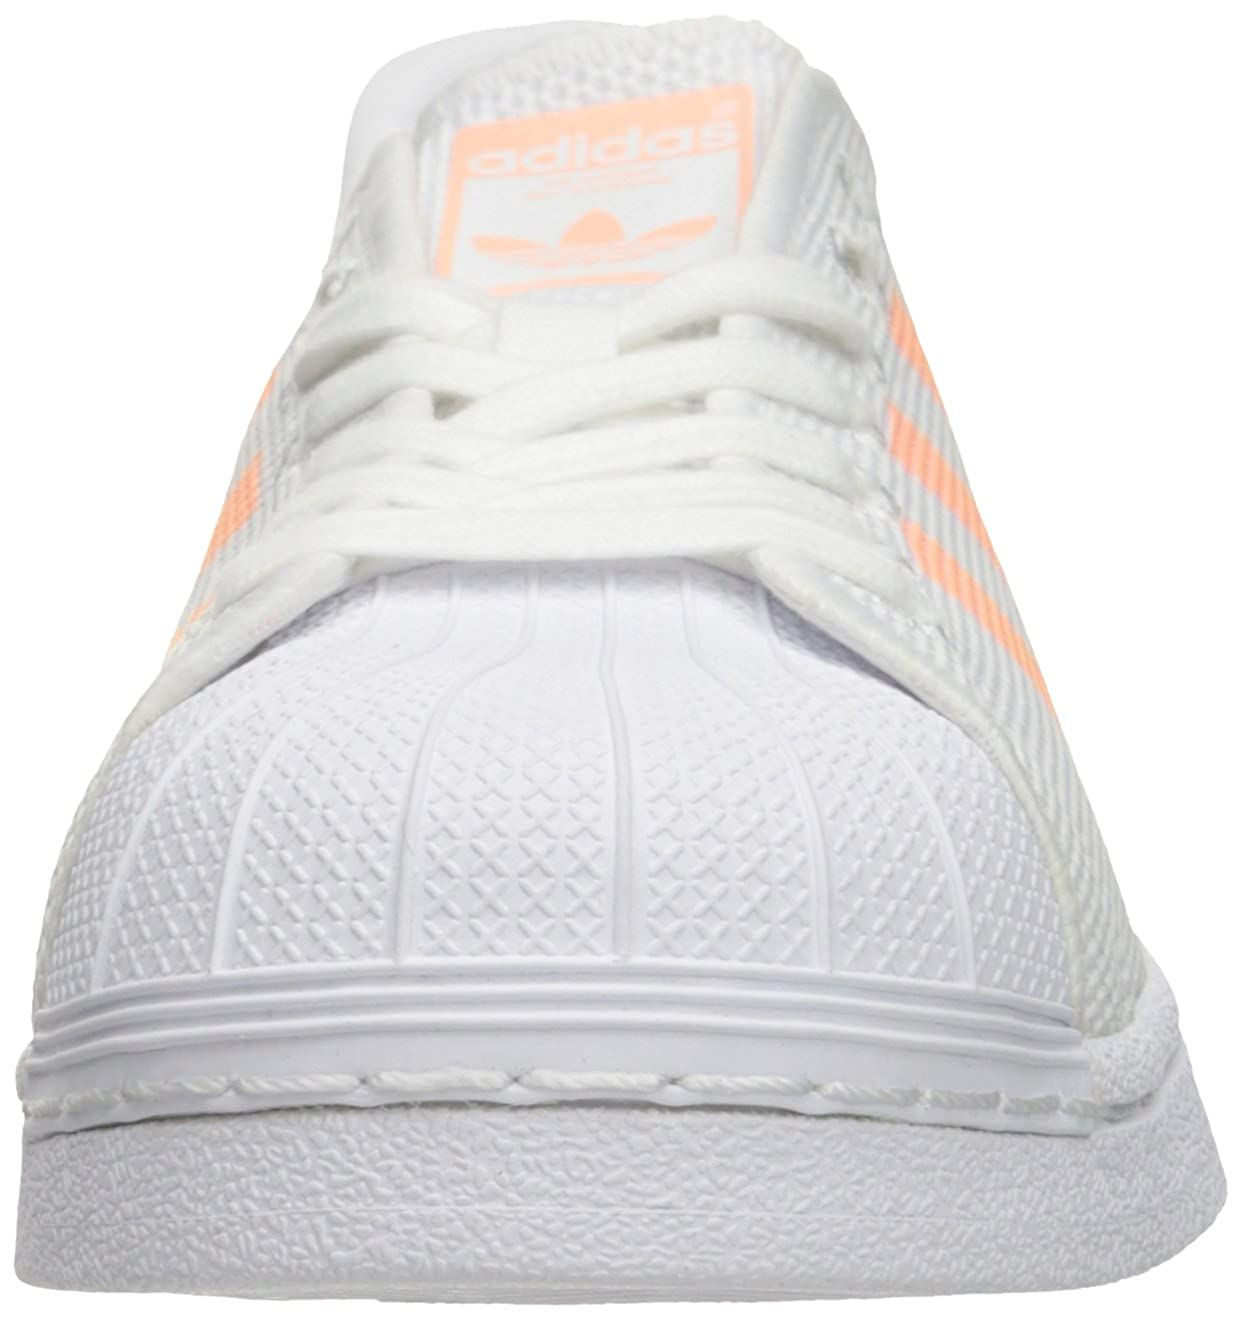 Adidas-Superstar-Women-039-s-Fashion-Casual-Sneakers-Athletic-Shoes-Originals thumbnail 48